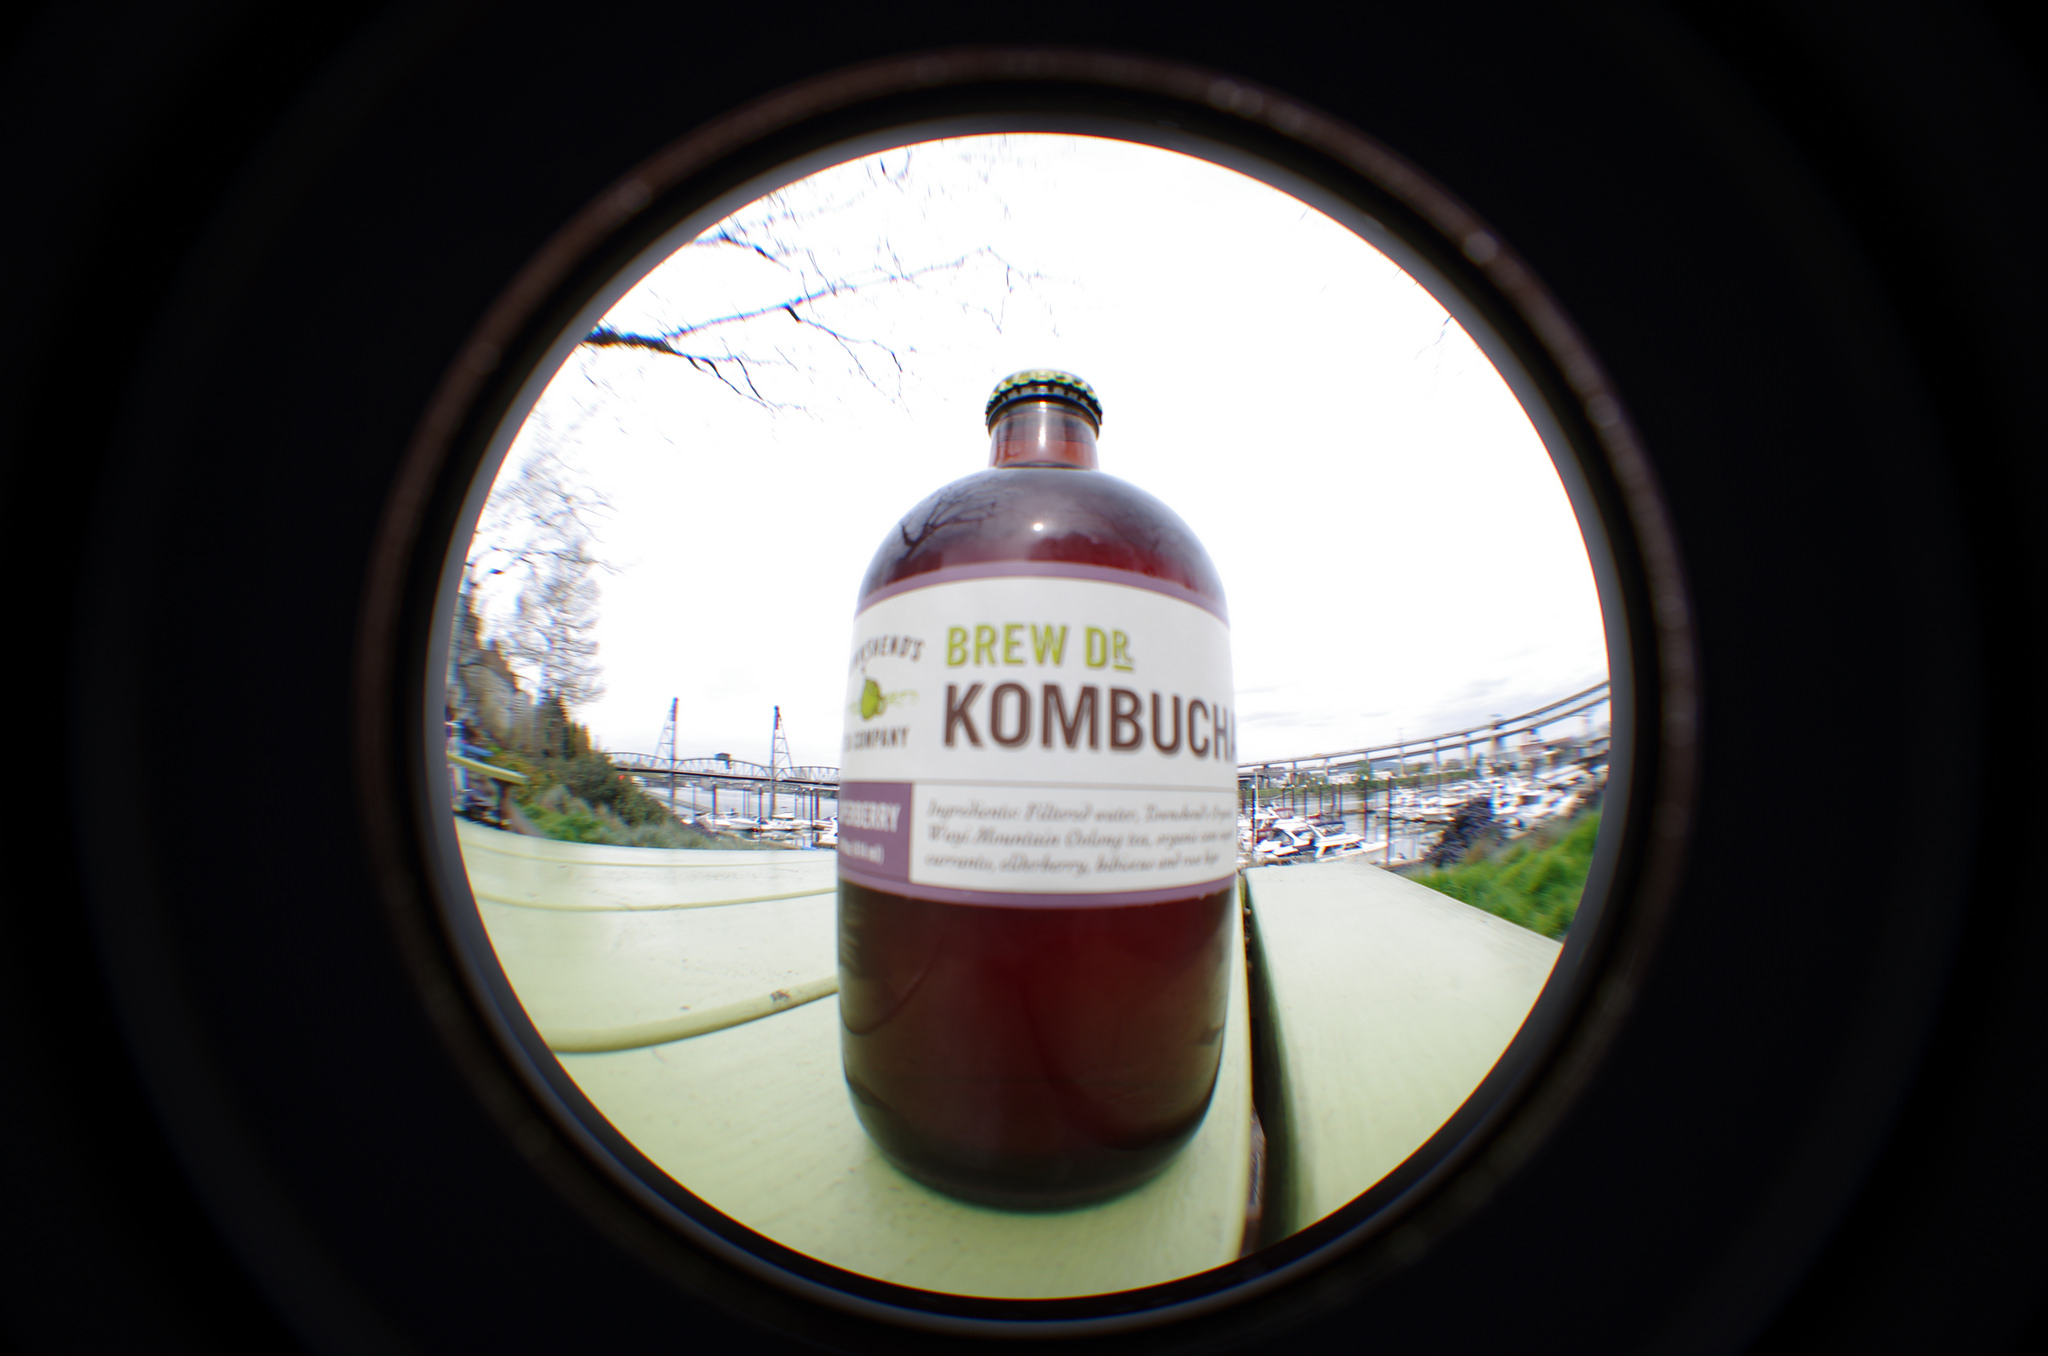 Kombucha. Photo: PROschvin/Flickr CC